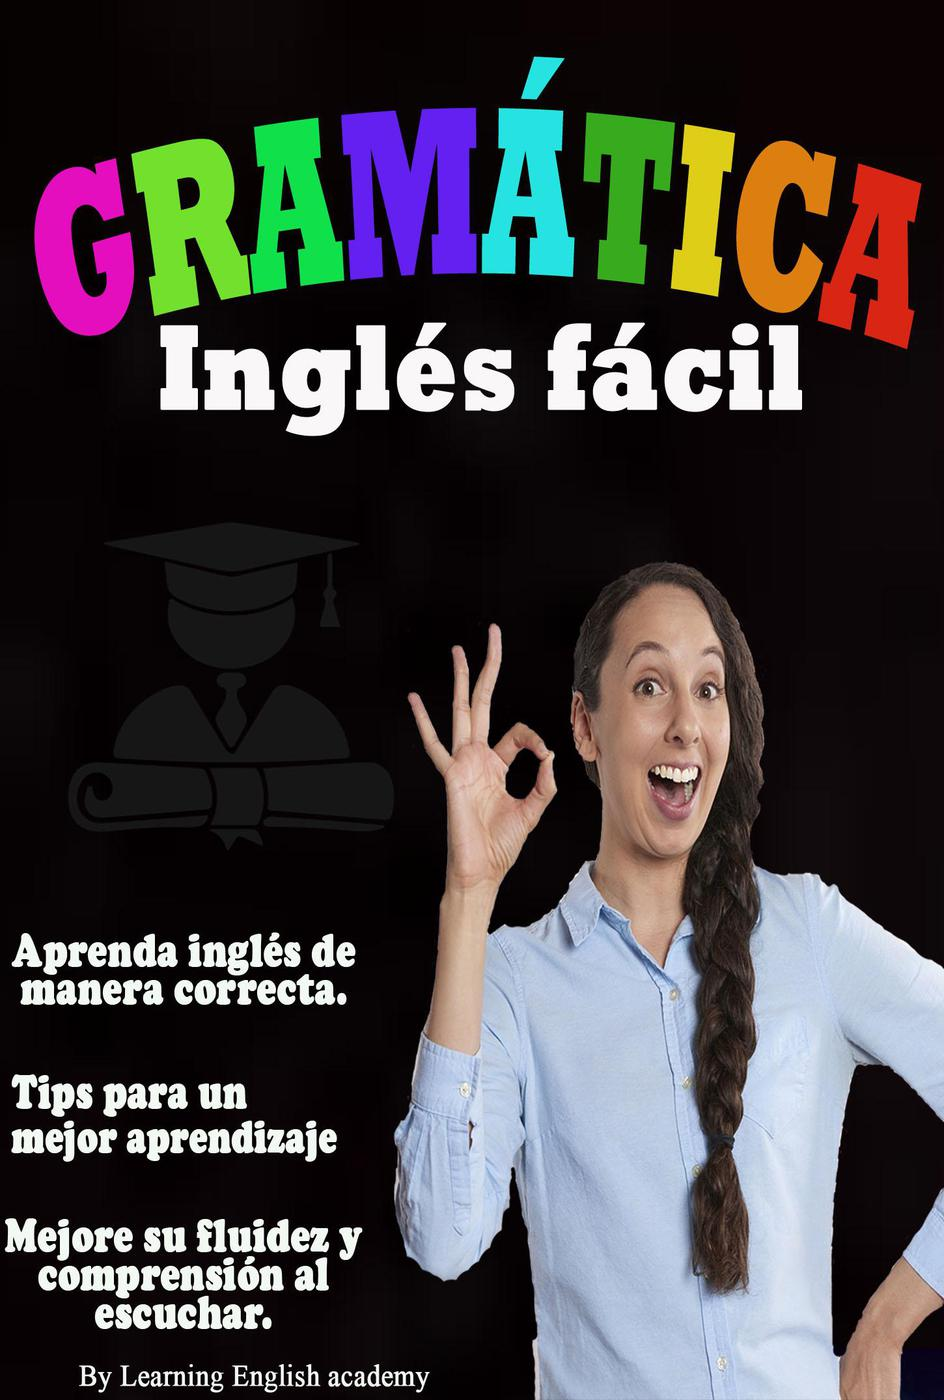 Gramática Inglés Fácil [electronic resource]